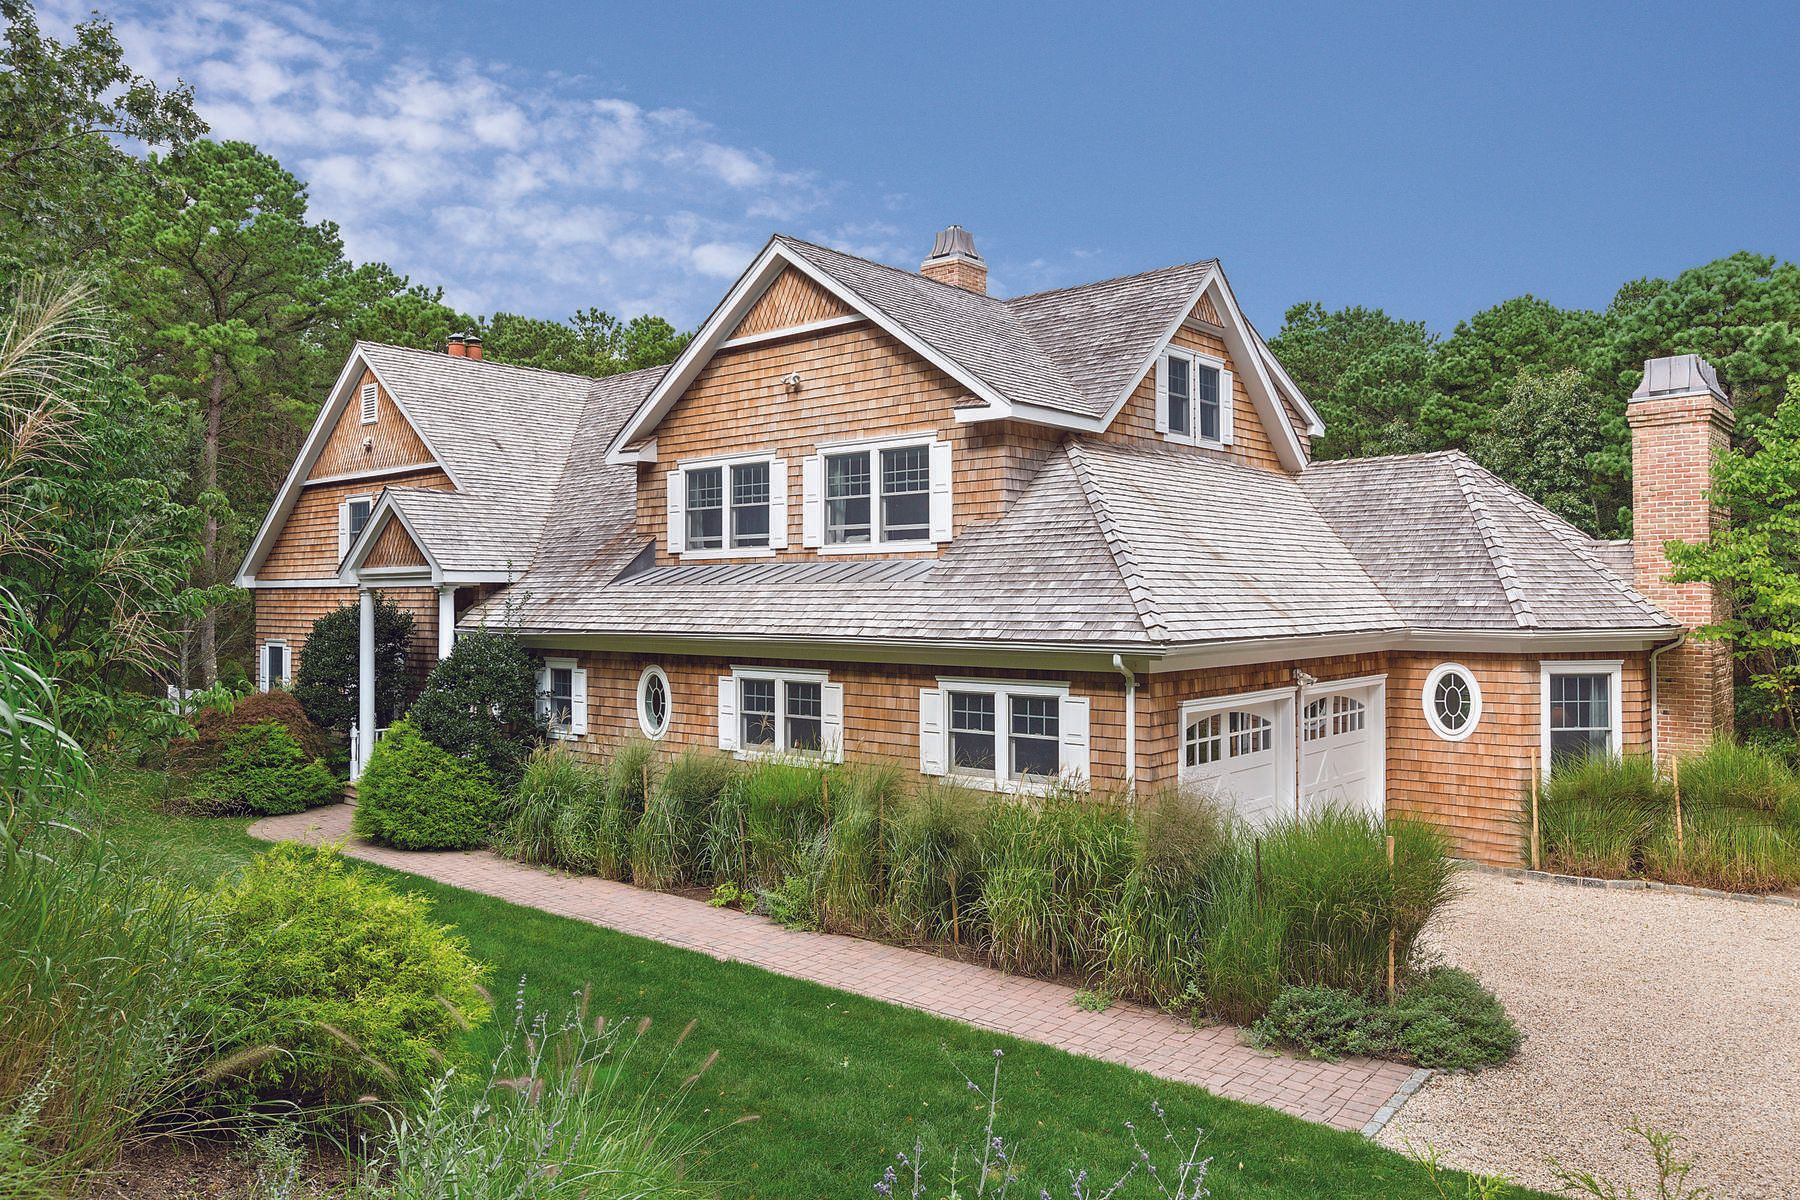 Single Family Home for Sale at 6 ACRE ESTATE WITH TENNIS, 2 MASTER SUITES 1058 Noyac Path Water Mill, New York 11976 United States